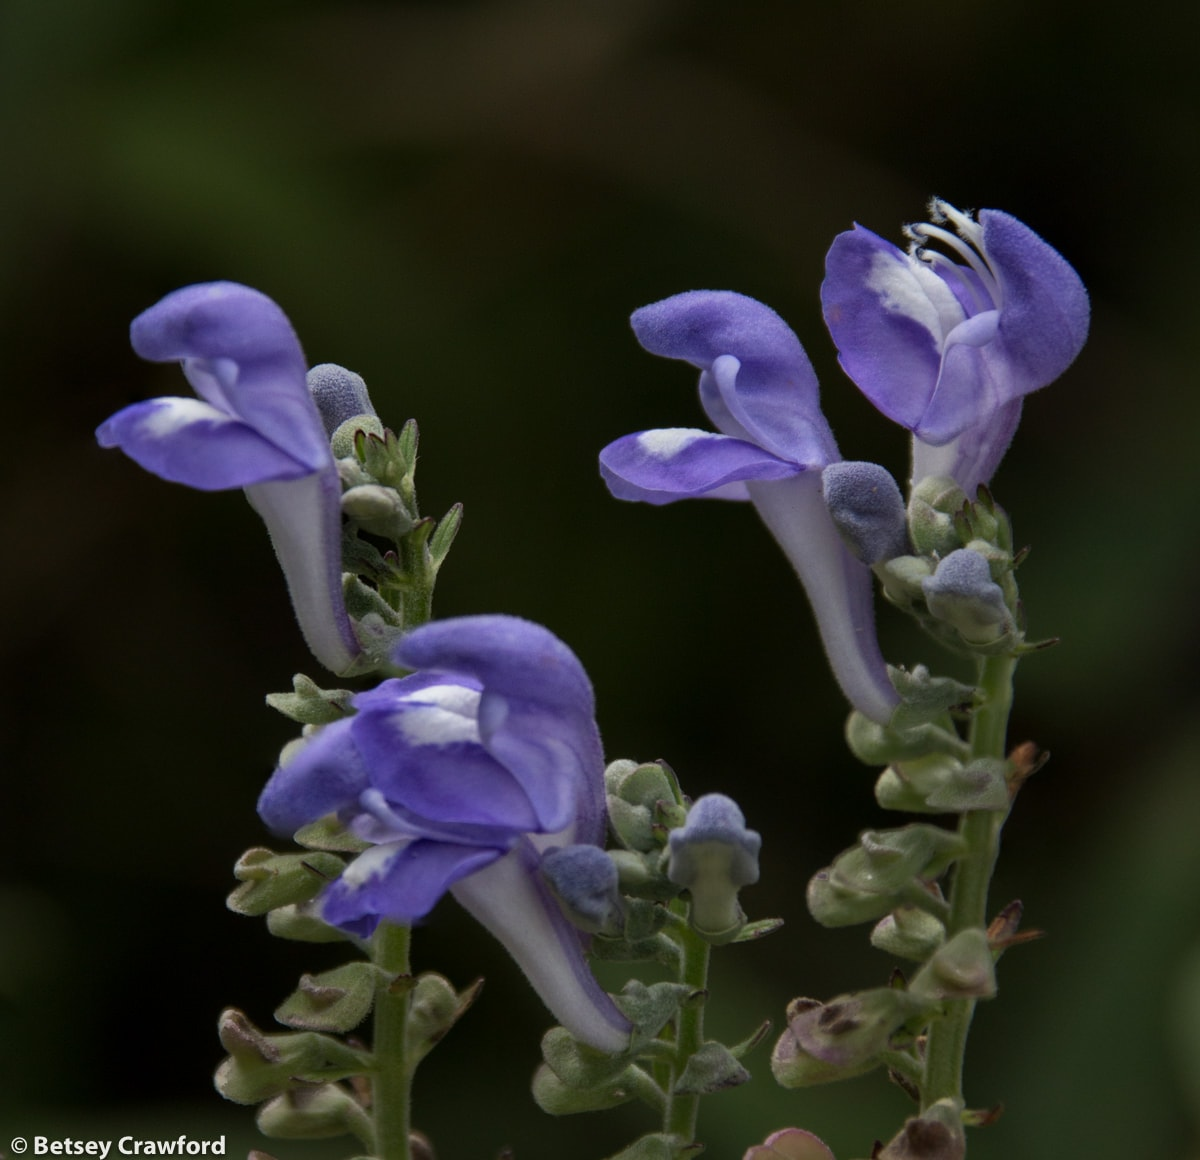 helmet-flower-scutellaria-integrifolia-Osceola-Missouri-by-Betsey-Crawford